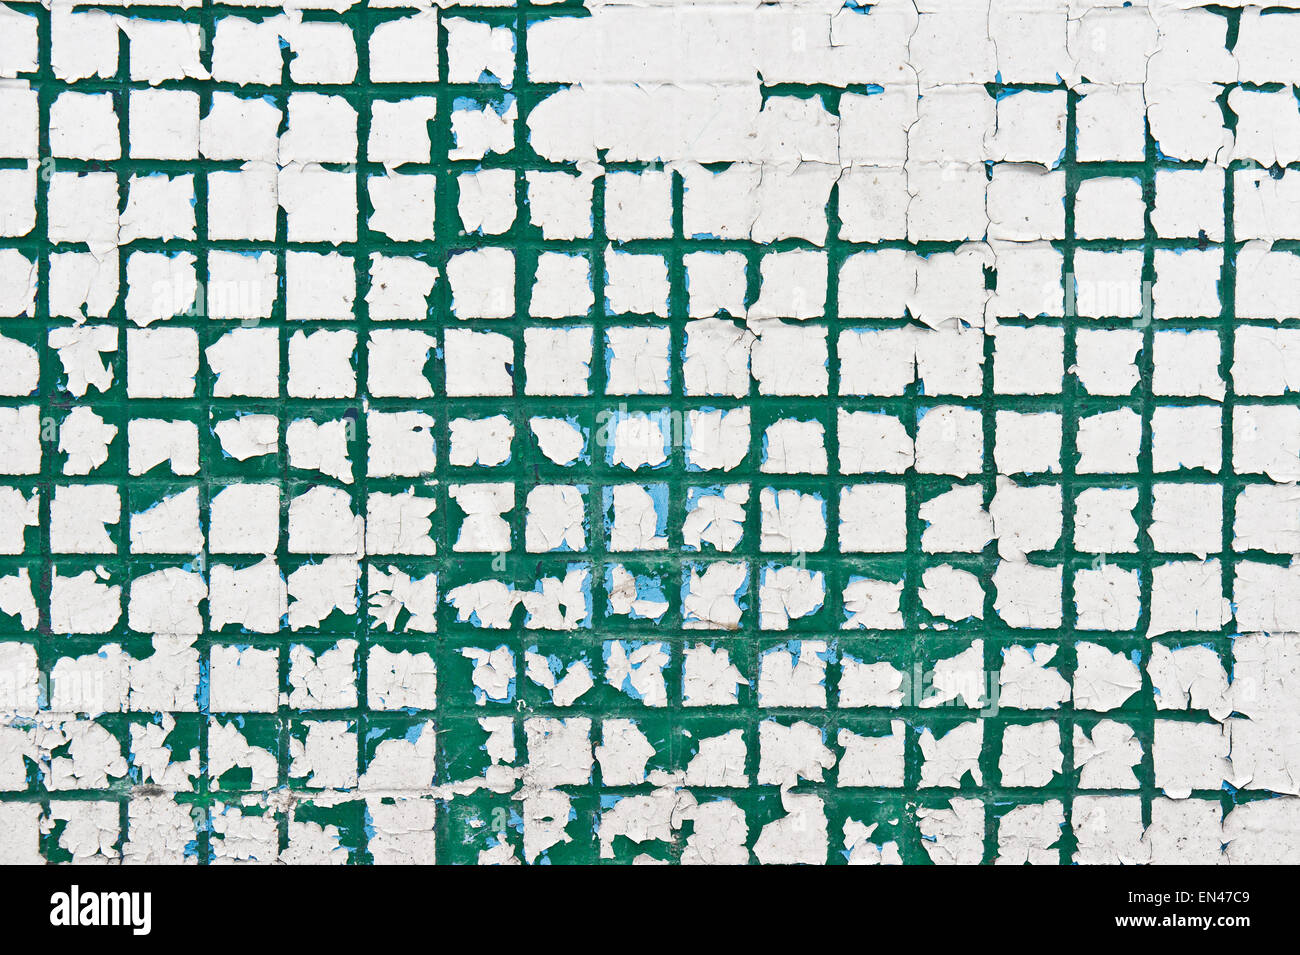 Peeling paint on a wall of tiles as a background image Stock Photo